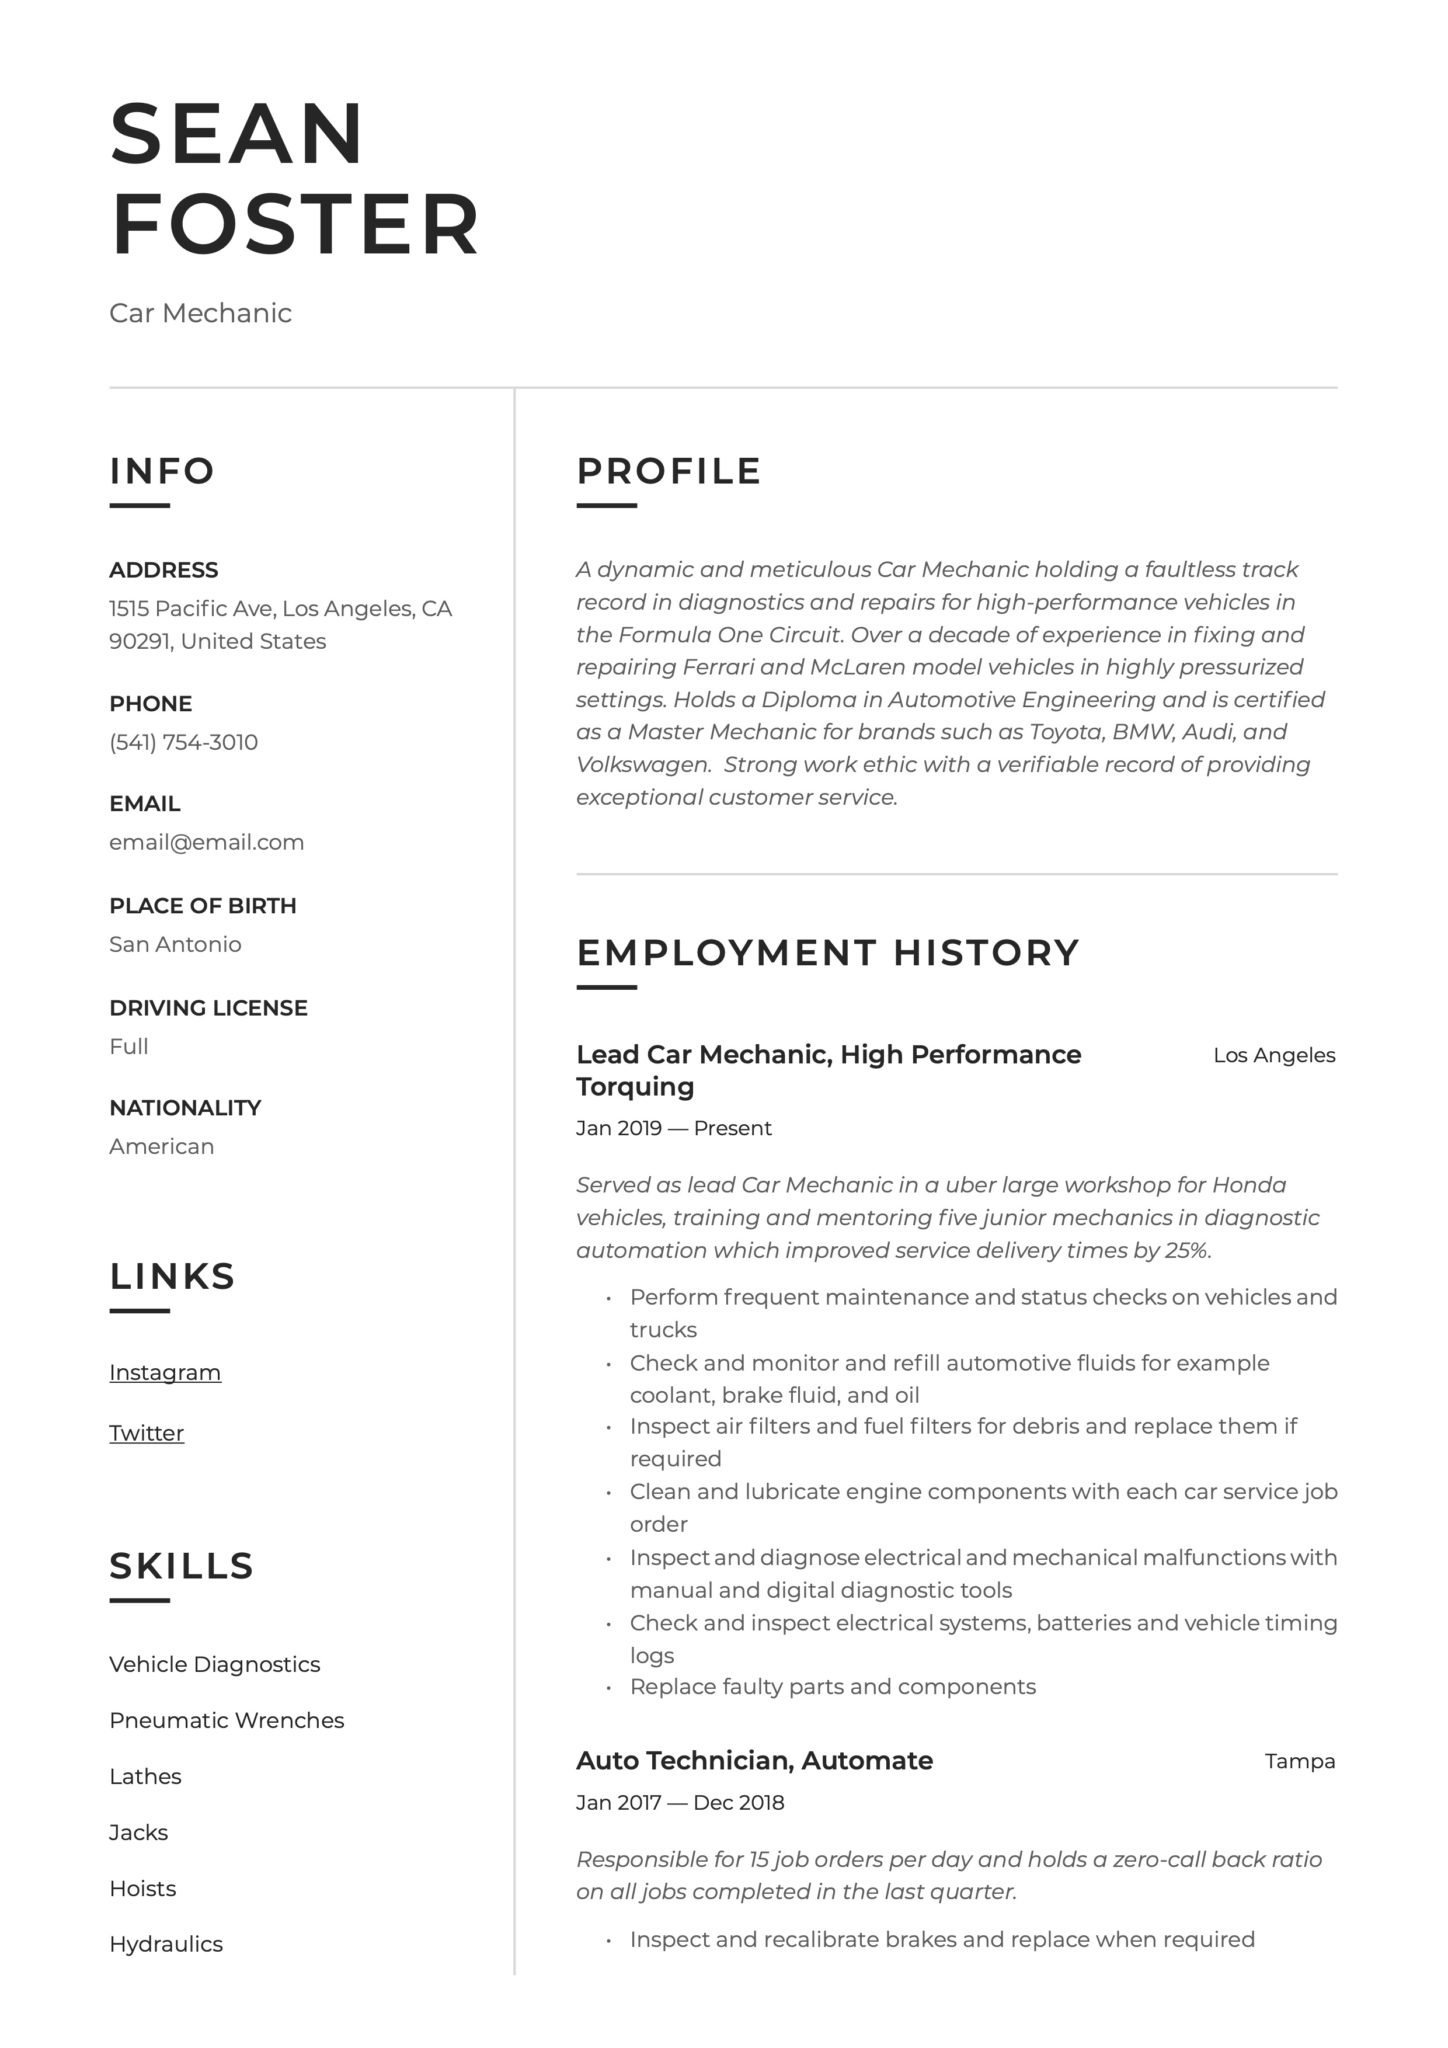 car mechanic resume guide examples automotive technician scaled team player skills Resume Automotive Technician Resume Examples